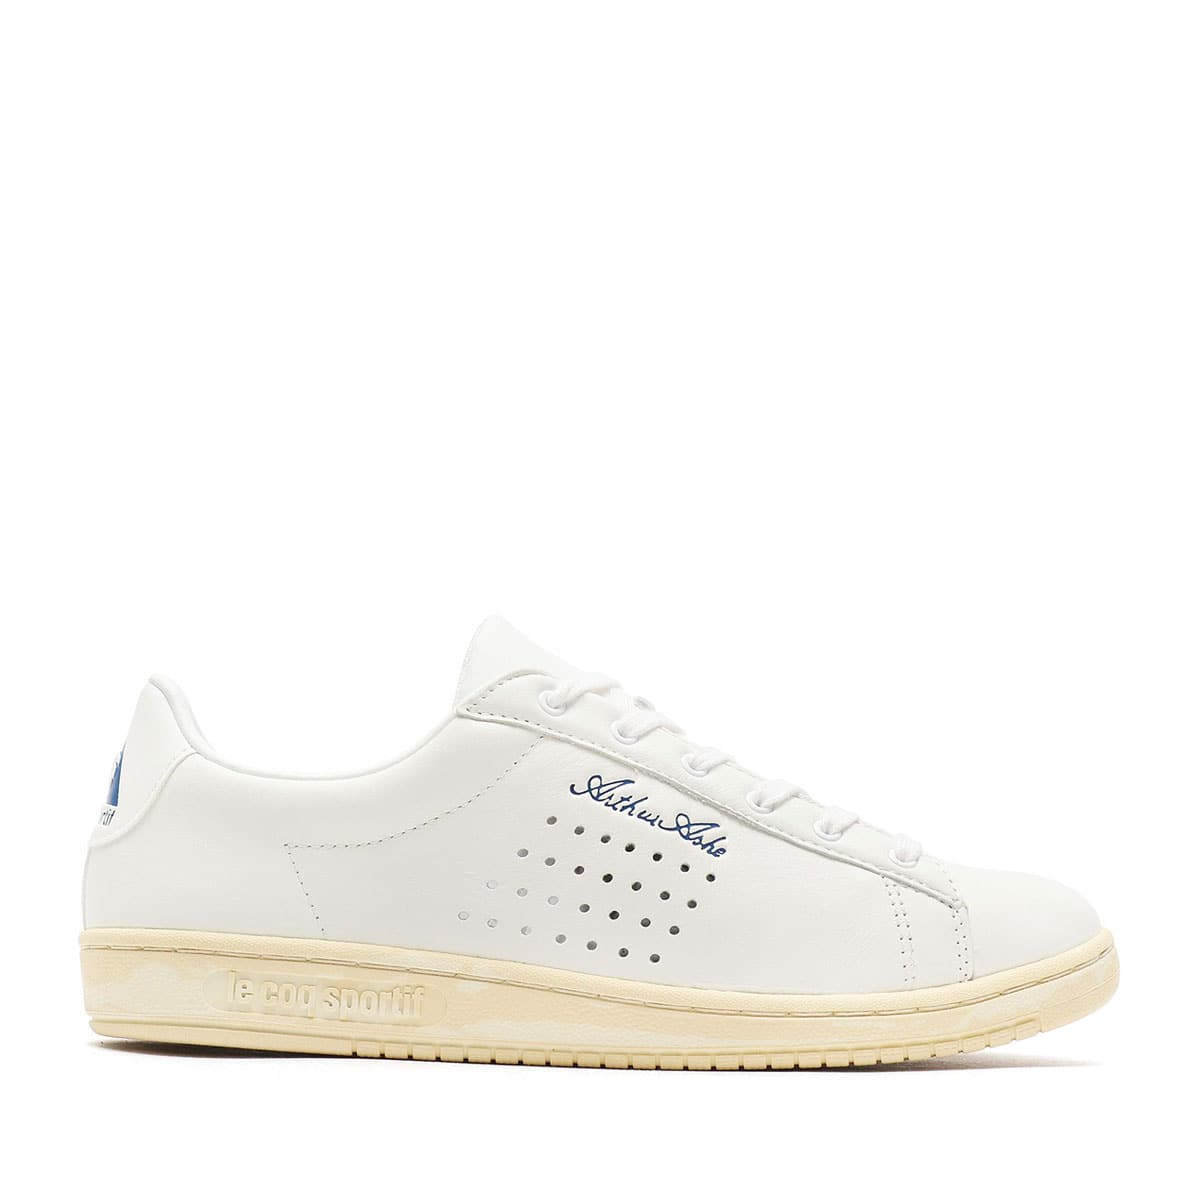 le coq sportif ARTHUR ASHE OG WHITE 18FW-I_photo_large